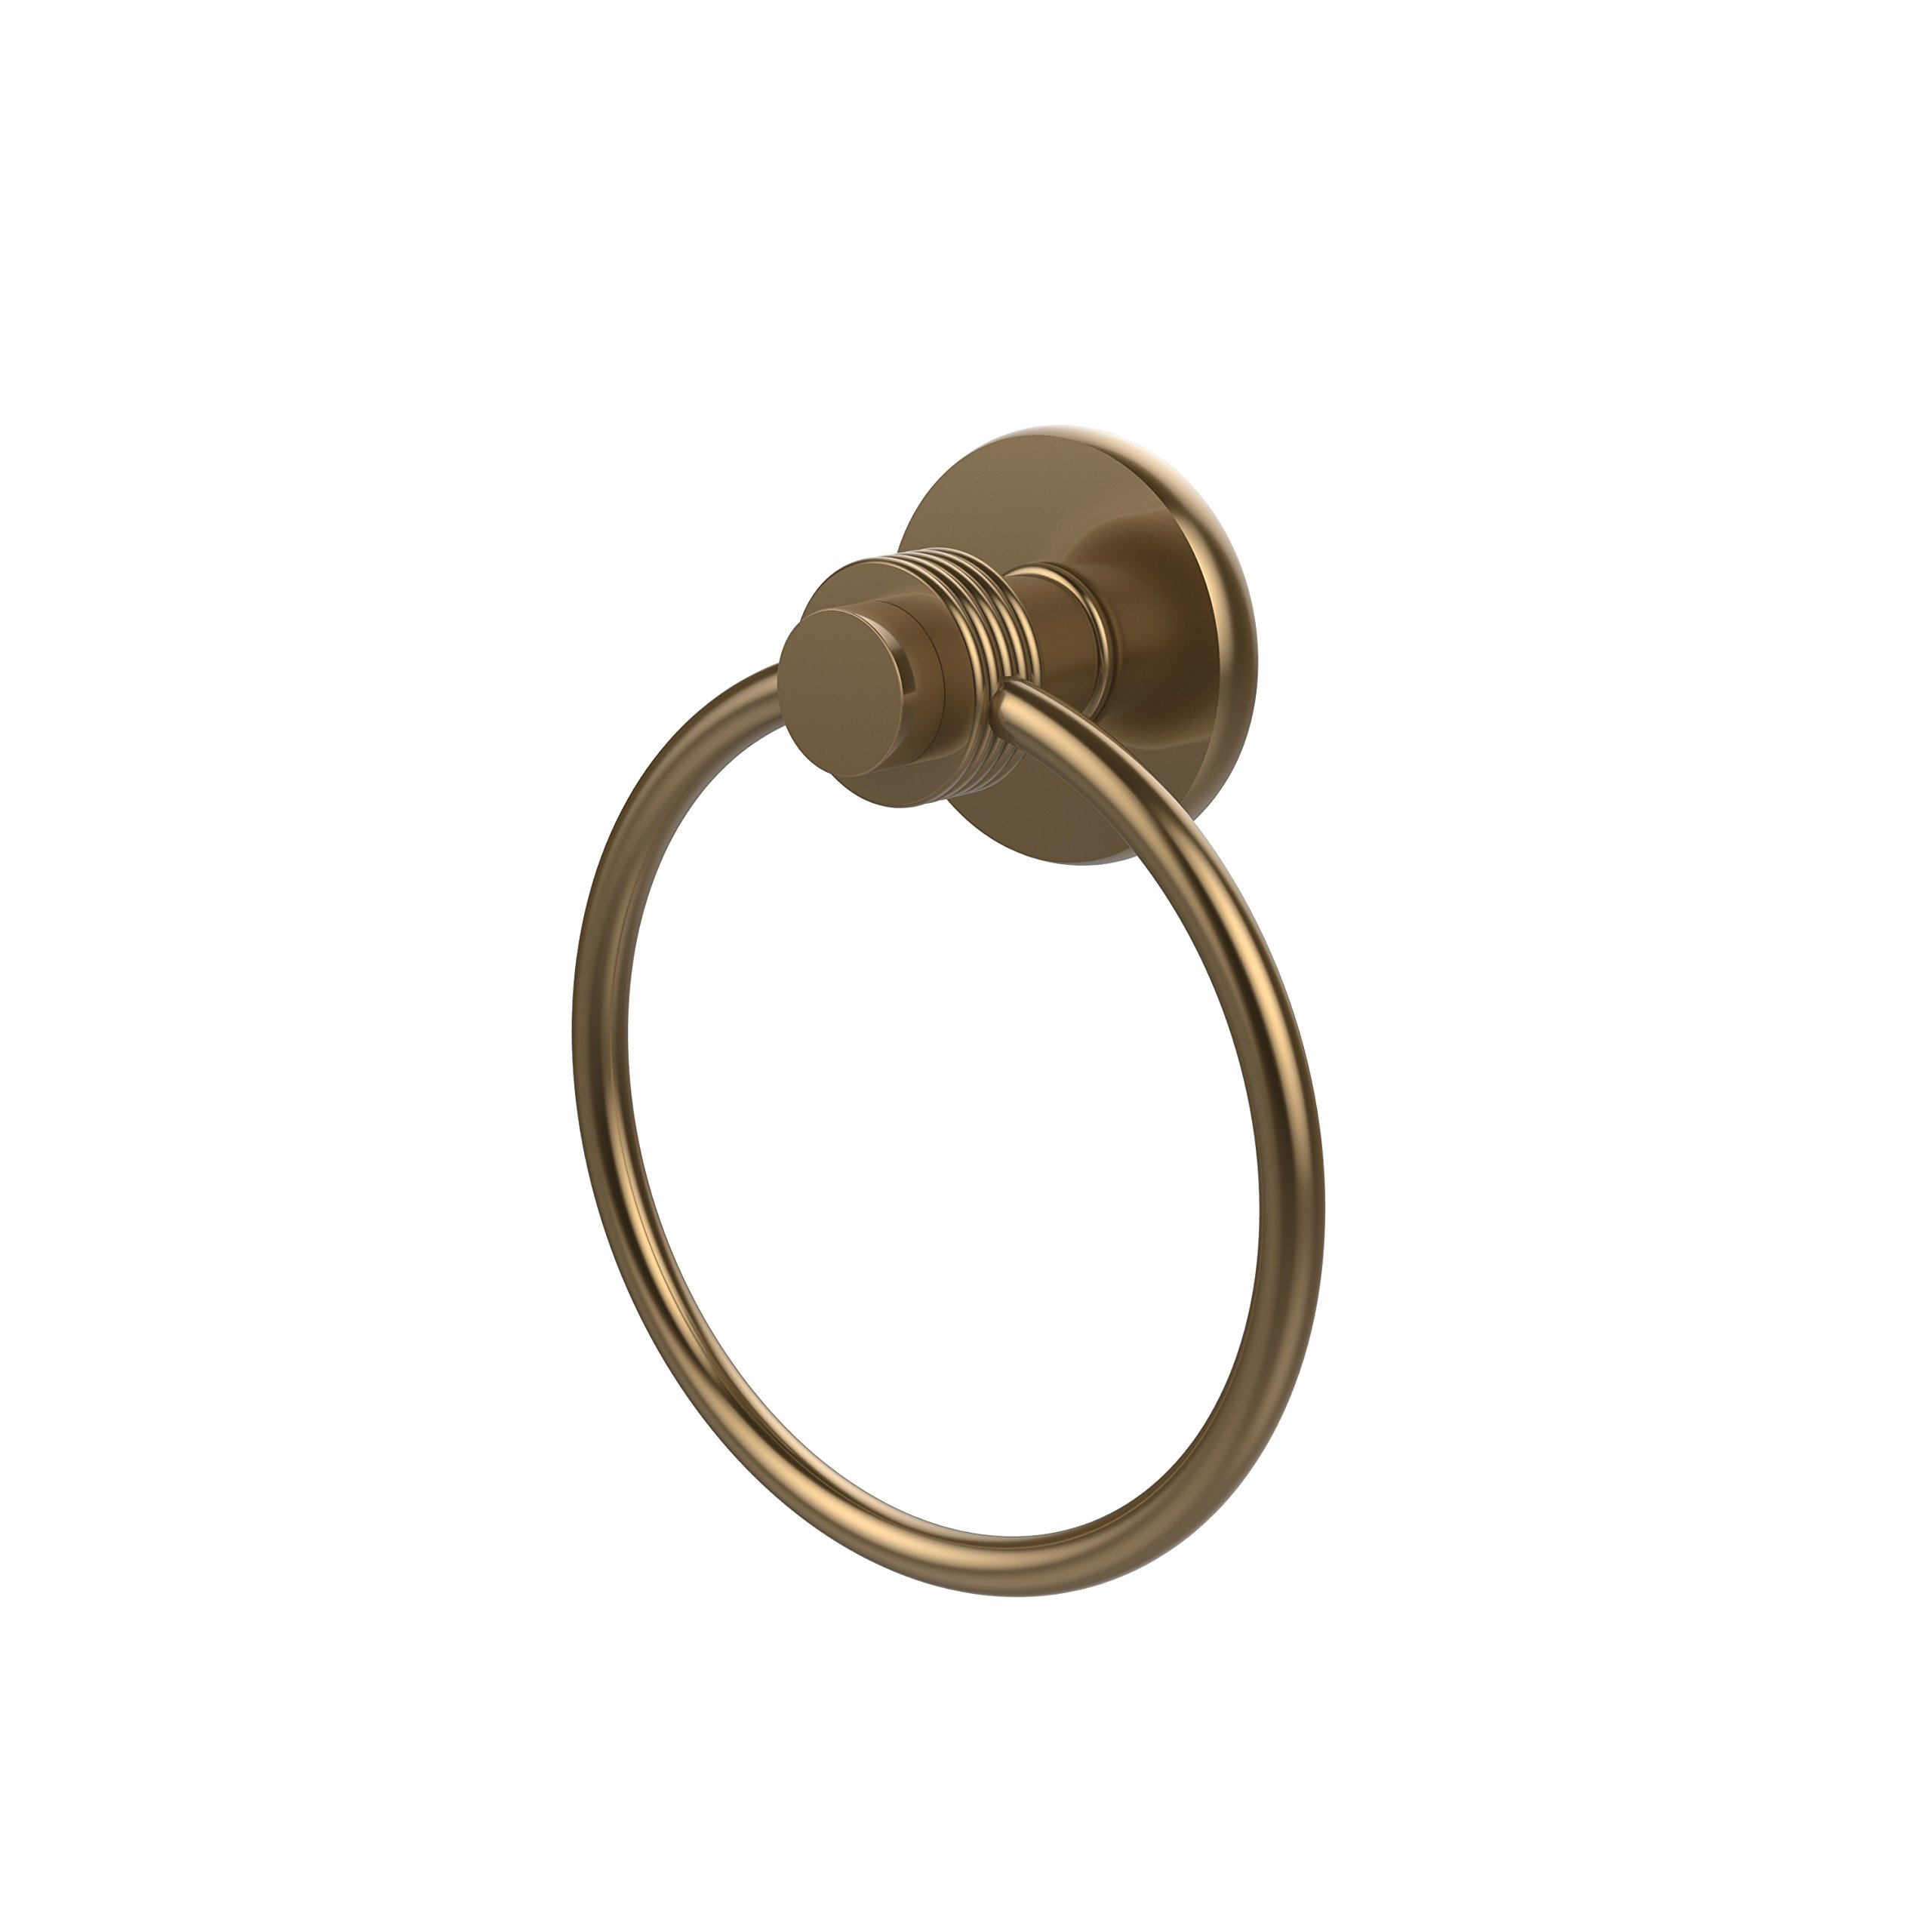 Allied Brass 916G-BBR Towel Ring, Brushed Bronze